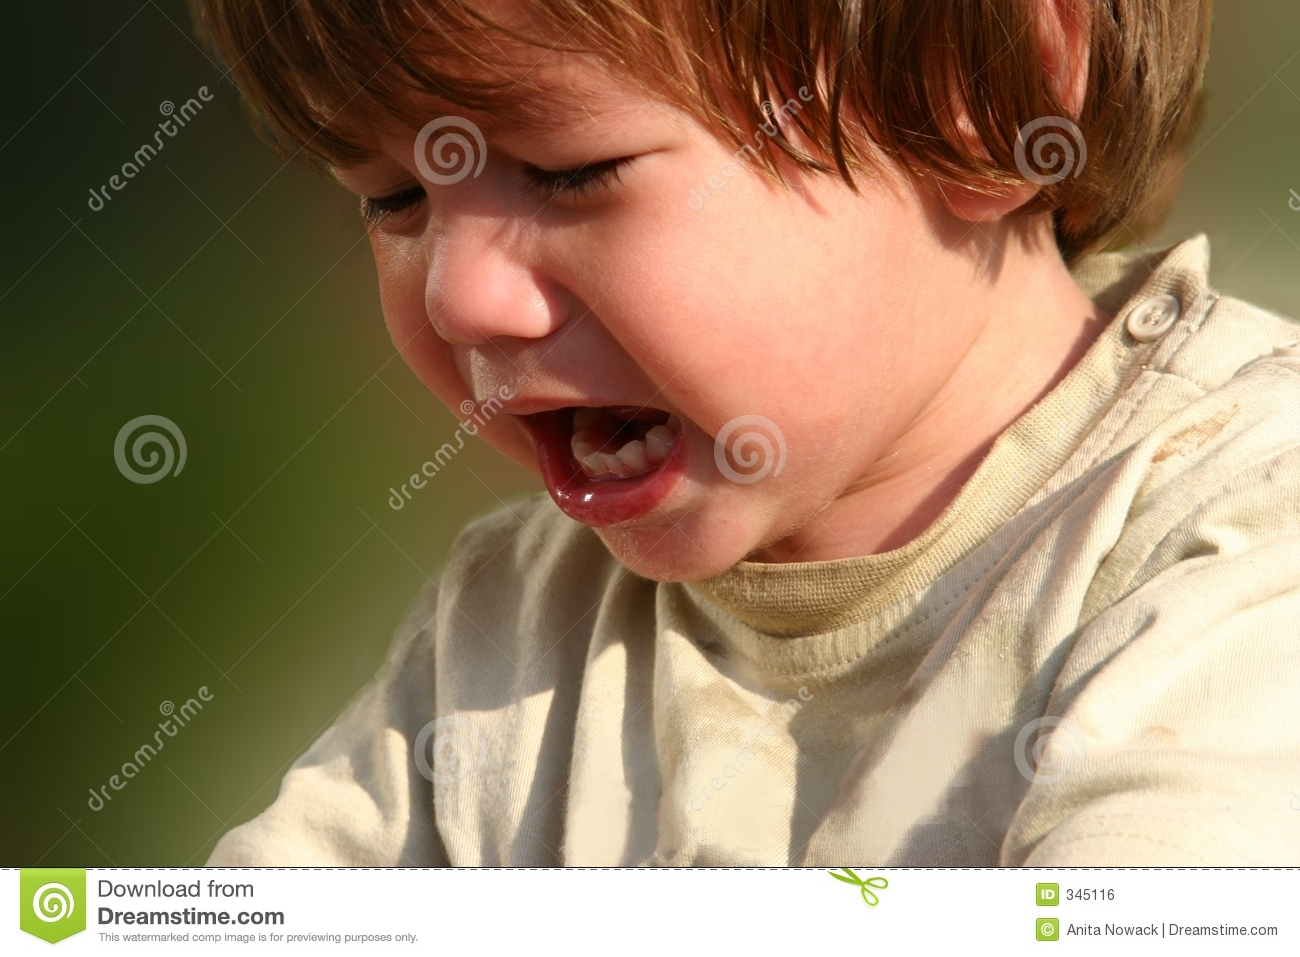 Child crying hungry